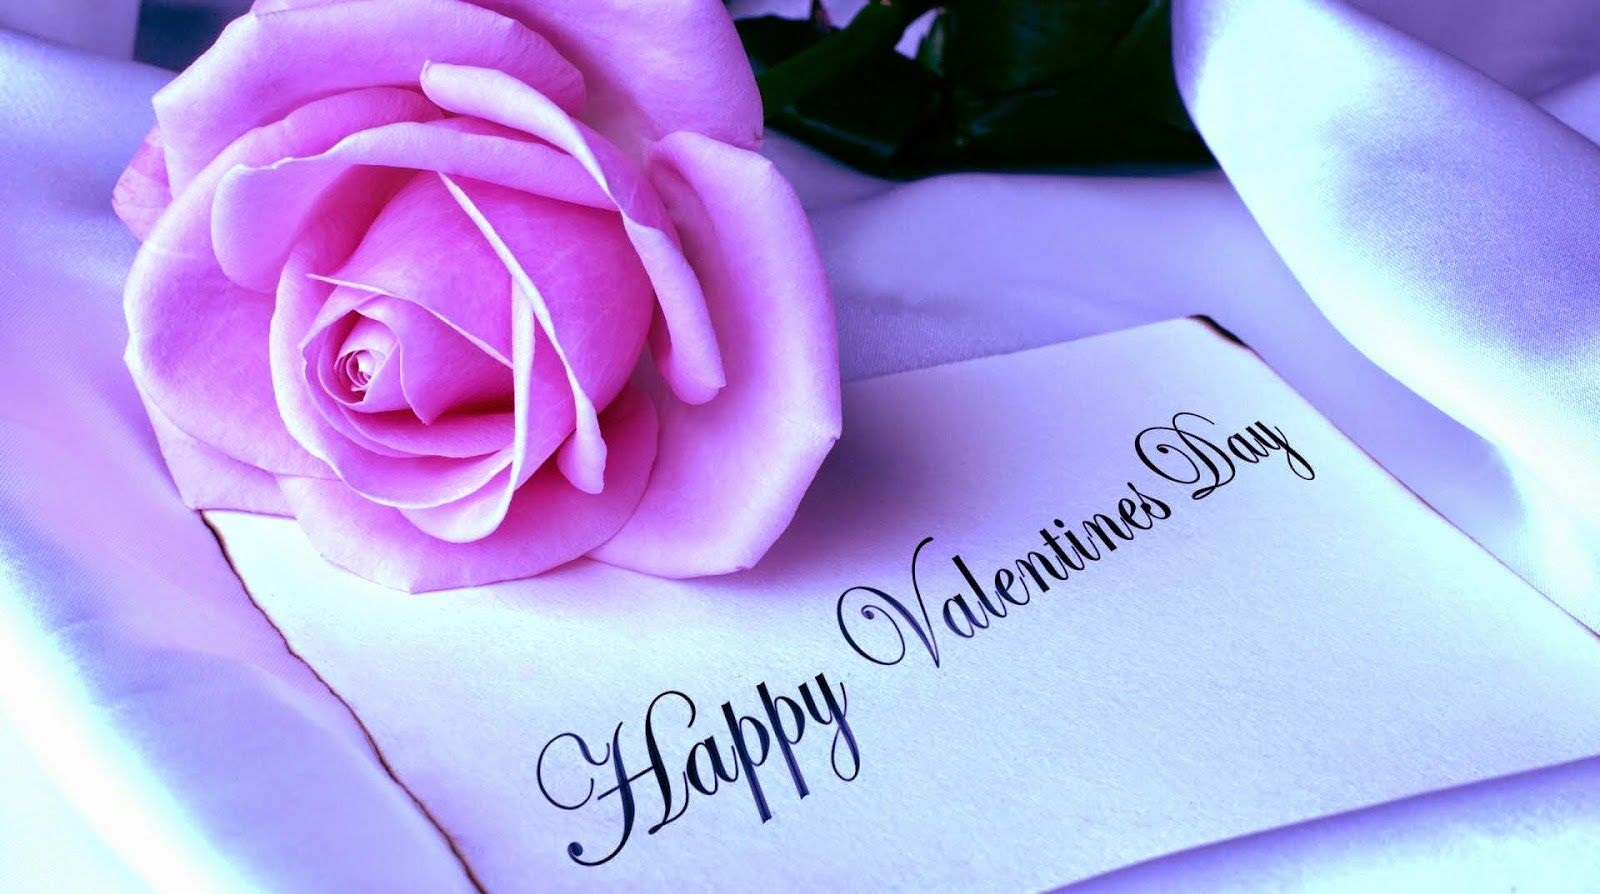 Happy Valentine Day 2017 Picture For Facebook & WhatsApp